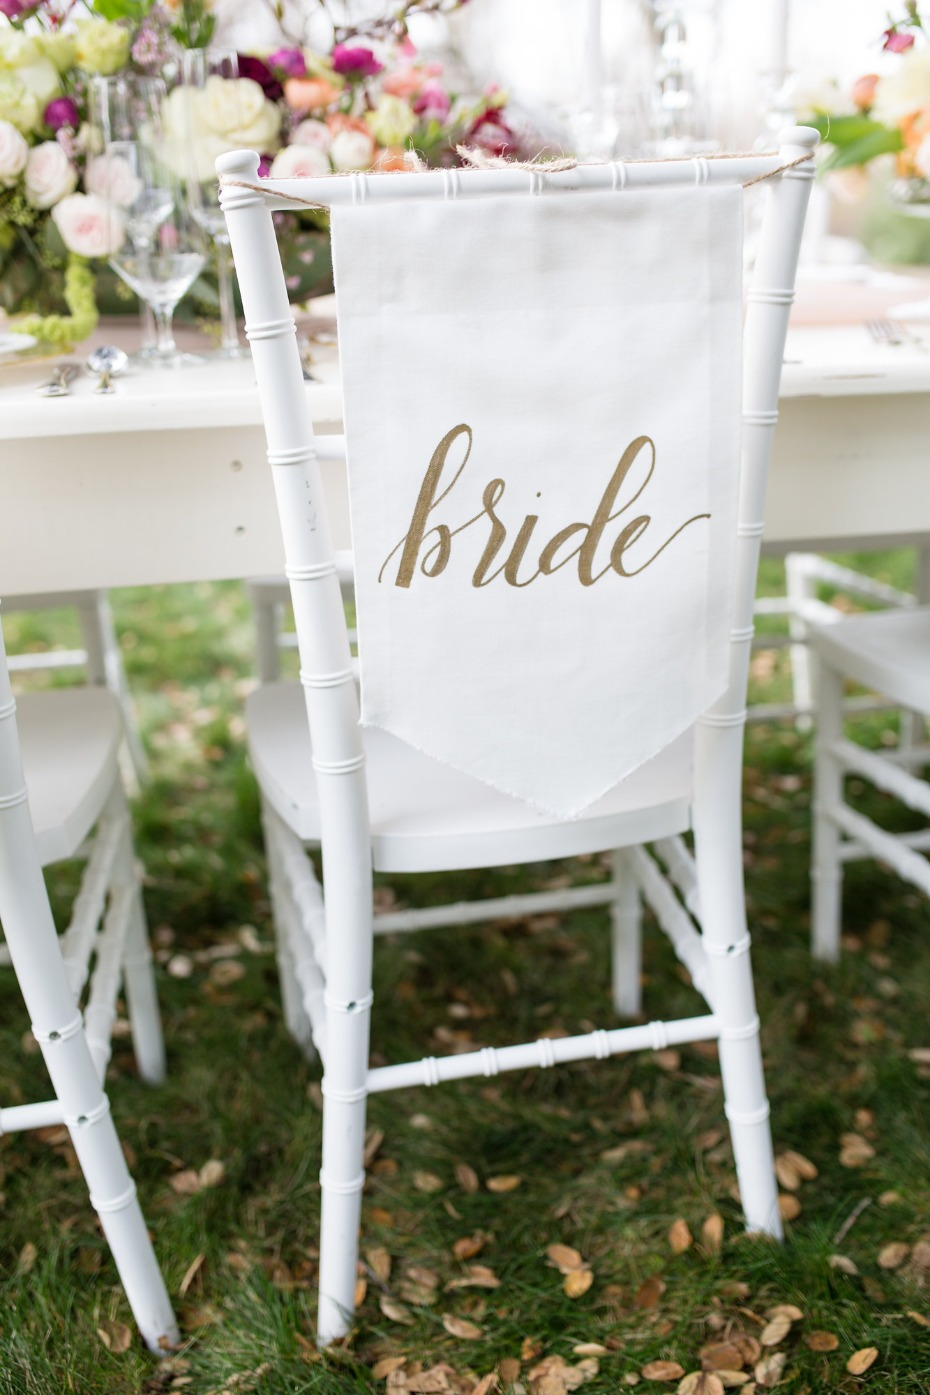 Bride chair banner